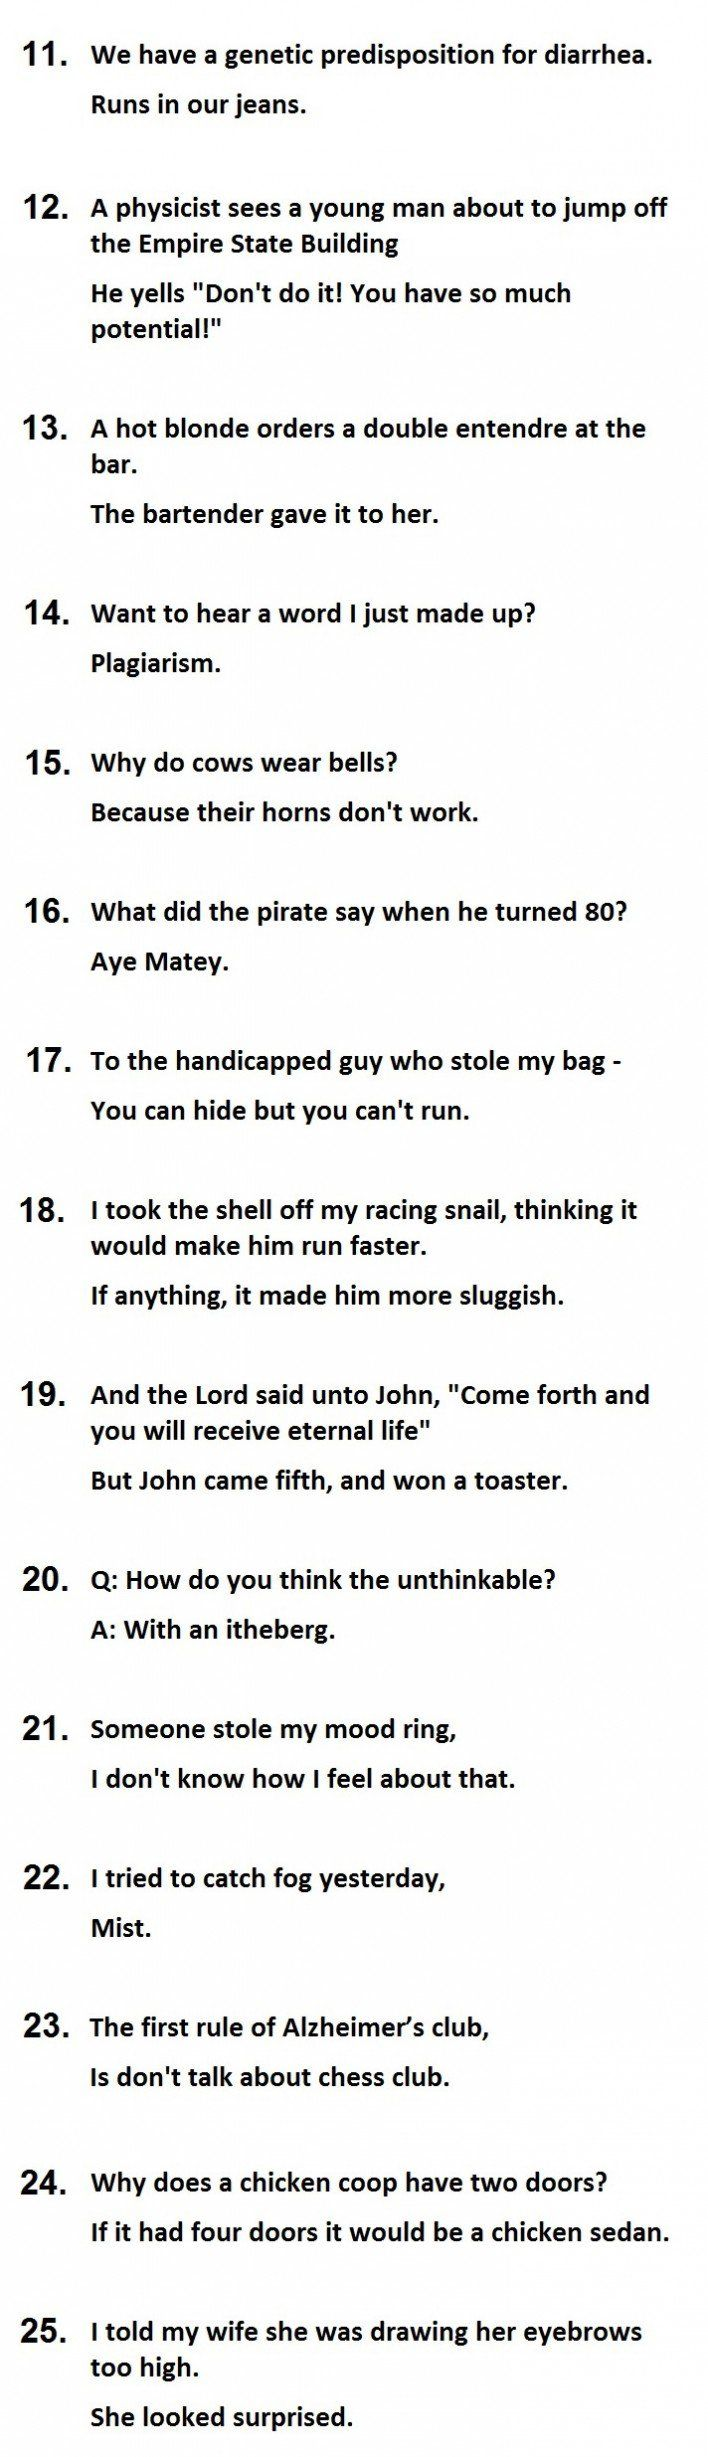 The 25 Best TwoLine Jokes Ever. 14 Is Priceless. Funny